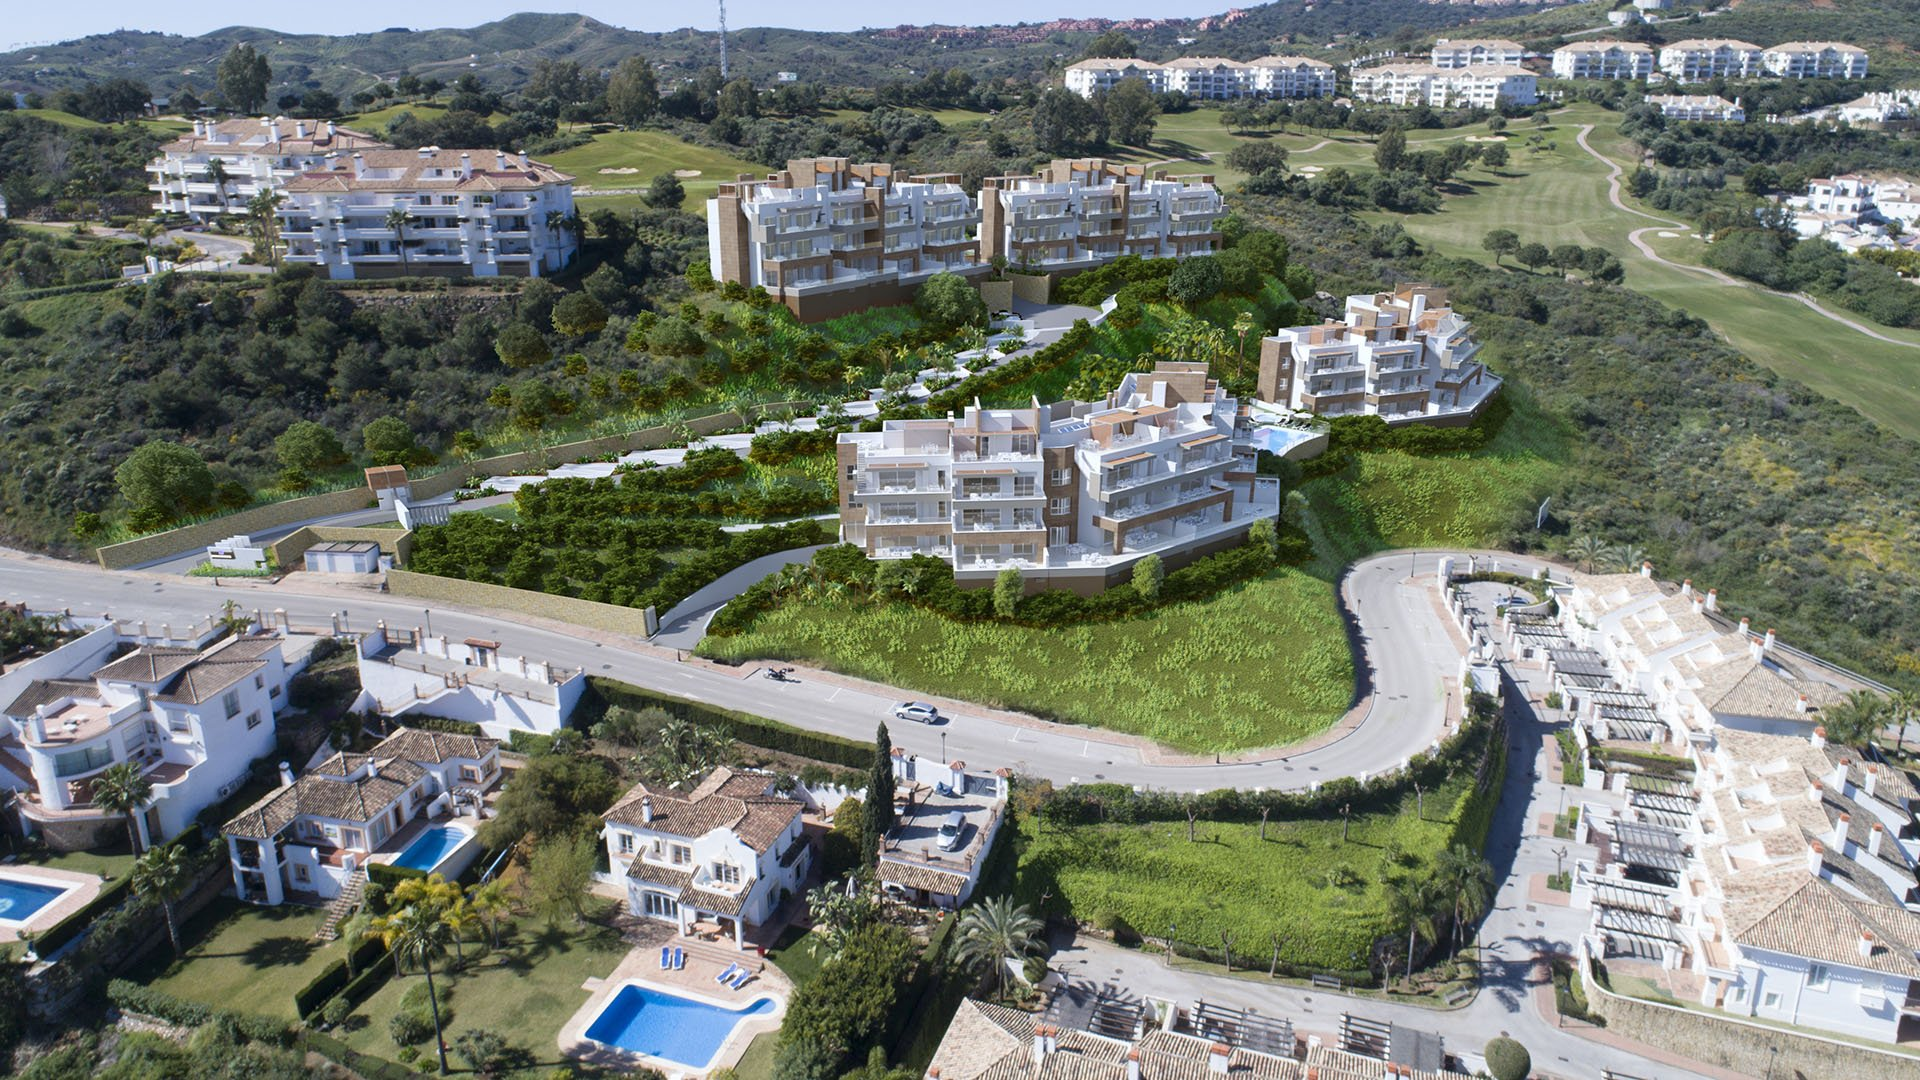 Grand View: Nieuwbouw appartementen in La Cala Golf Resort